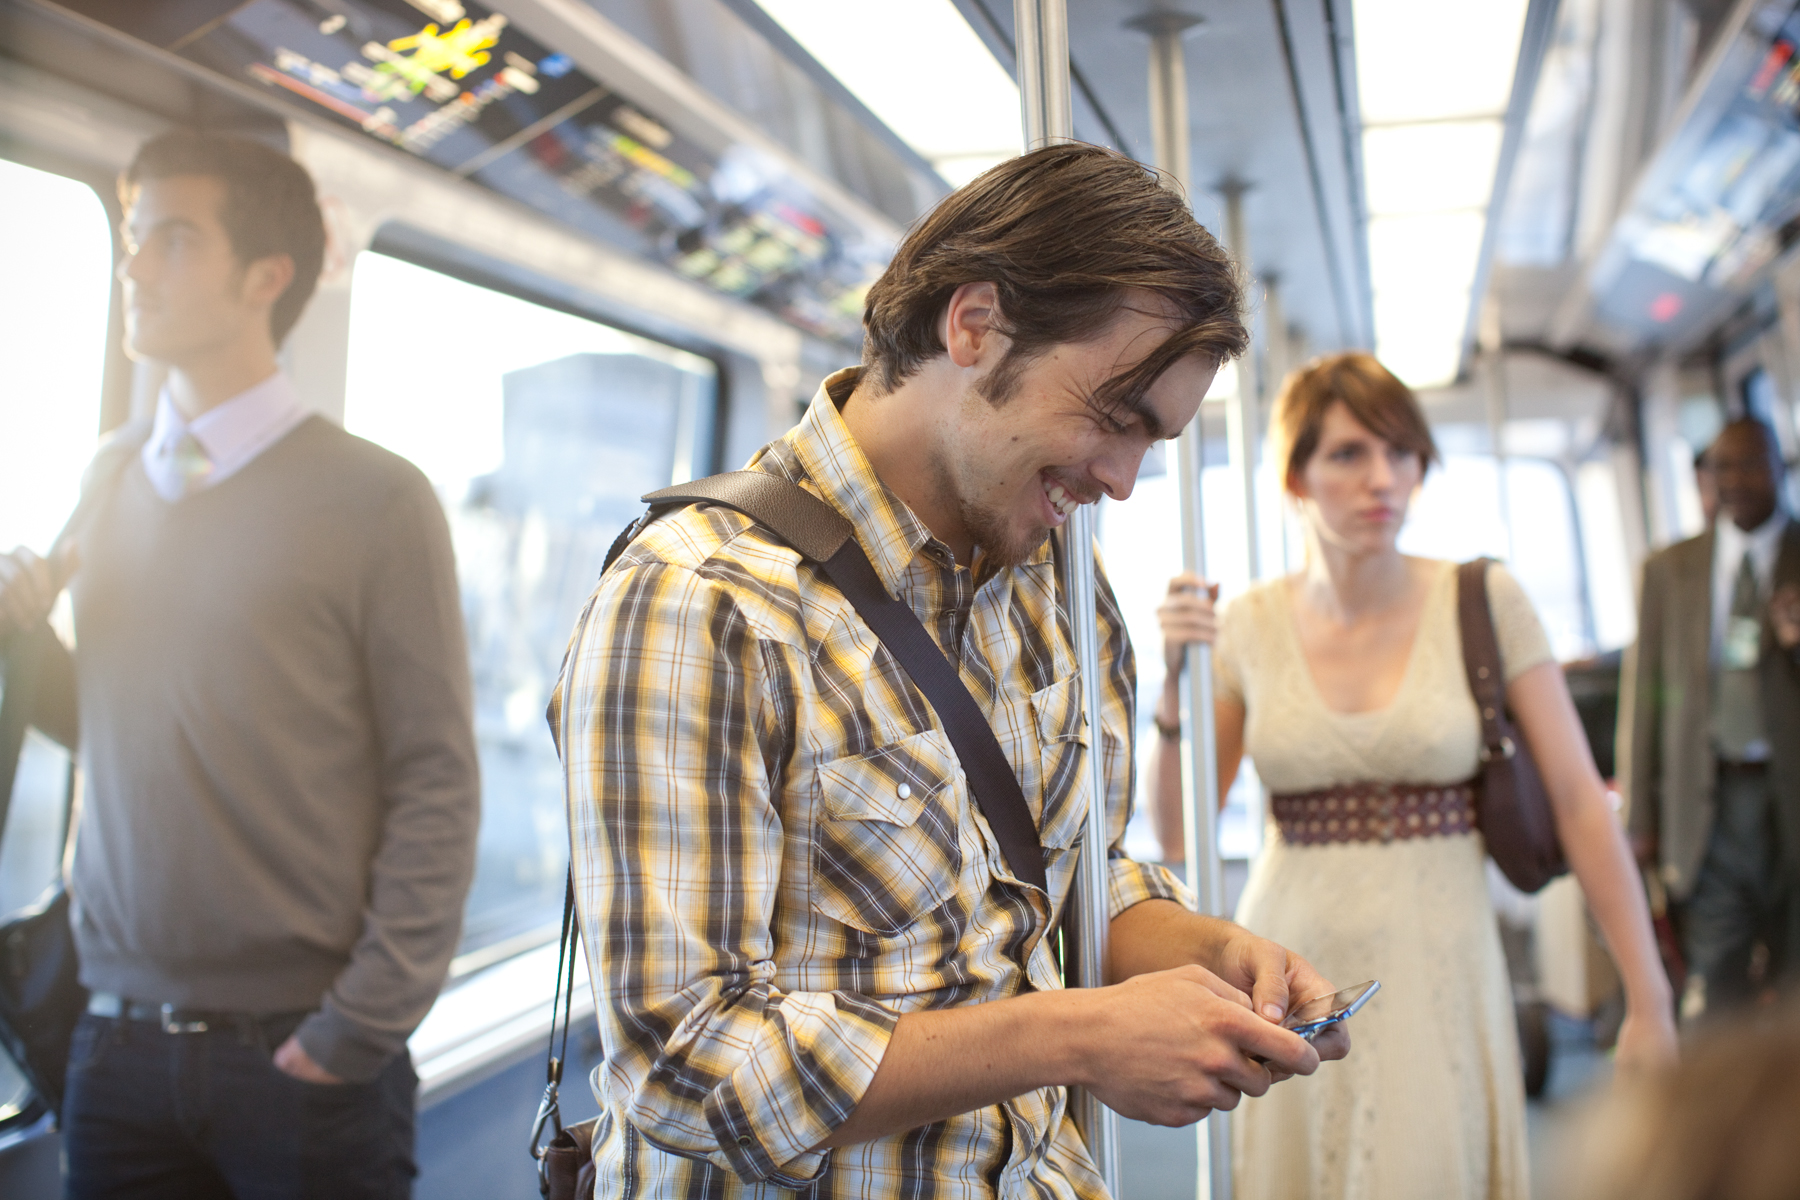 Lifestyle Advertising Man Texting on Phone During Commute